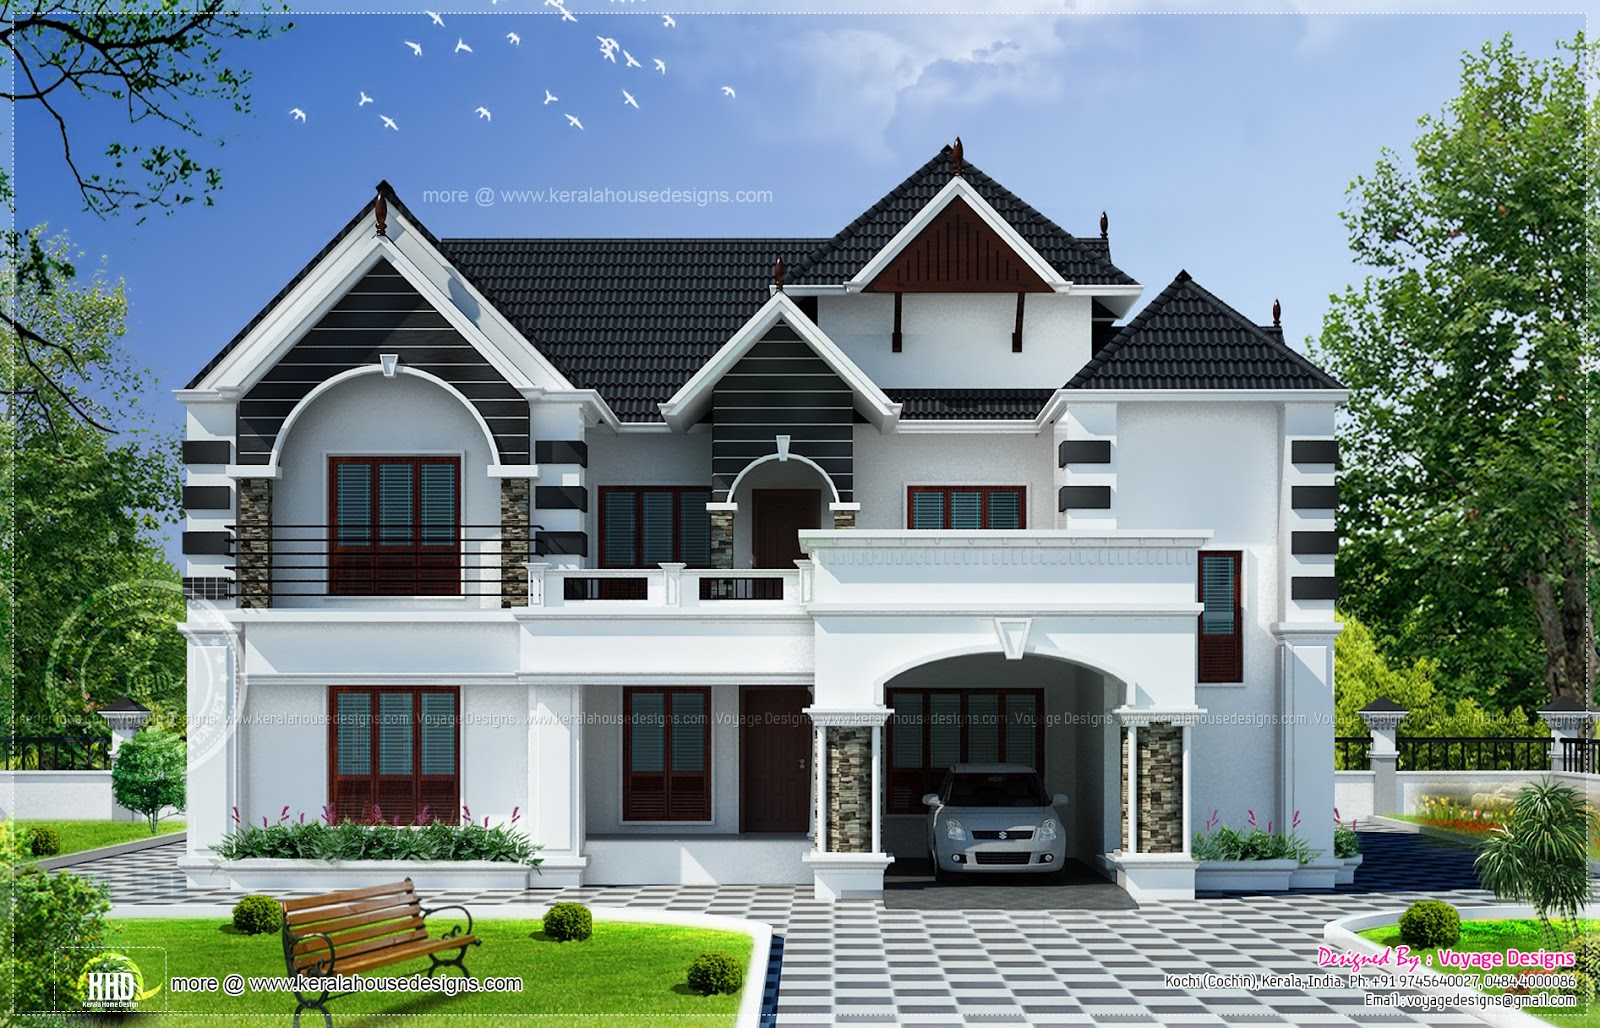 4 bedroom colonial style house kerala home design and 2500 sq ft house plans indian style